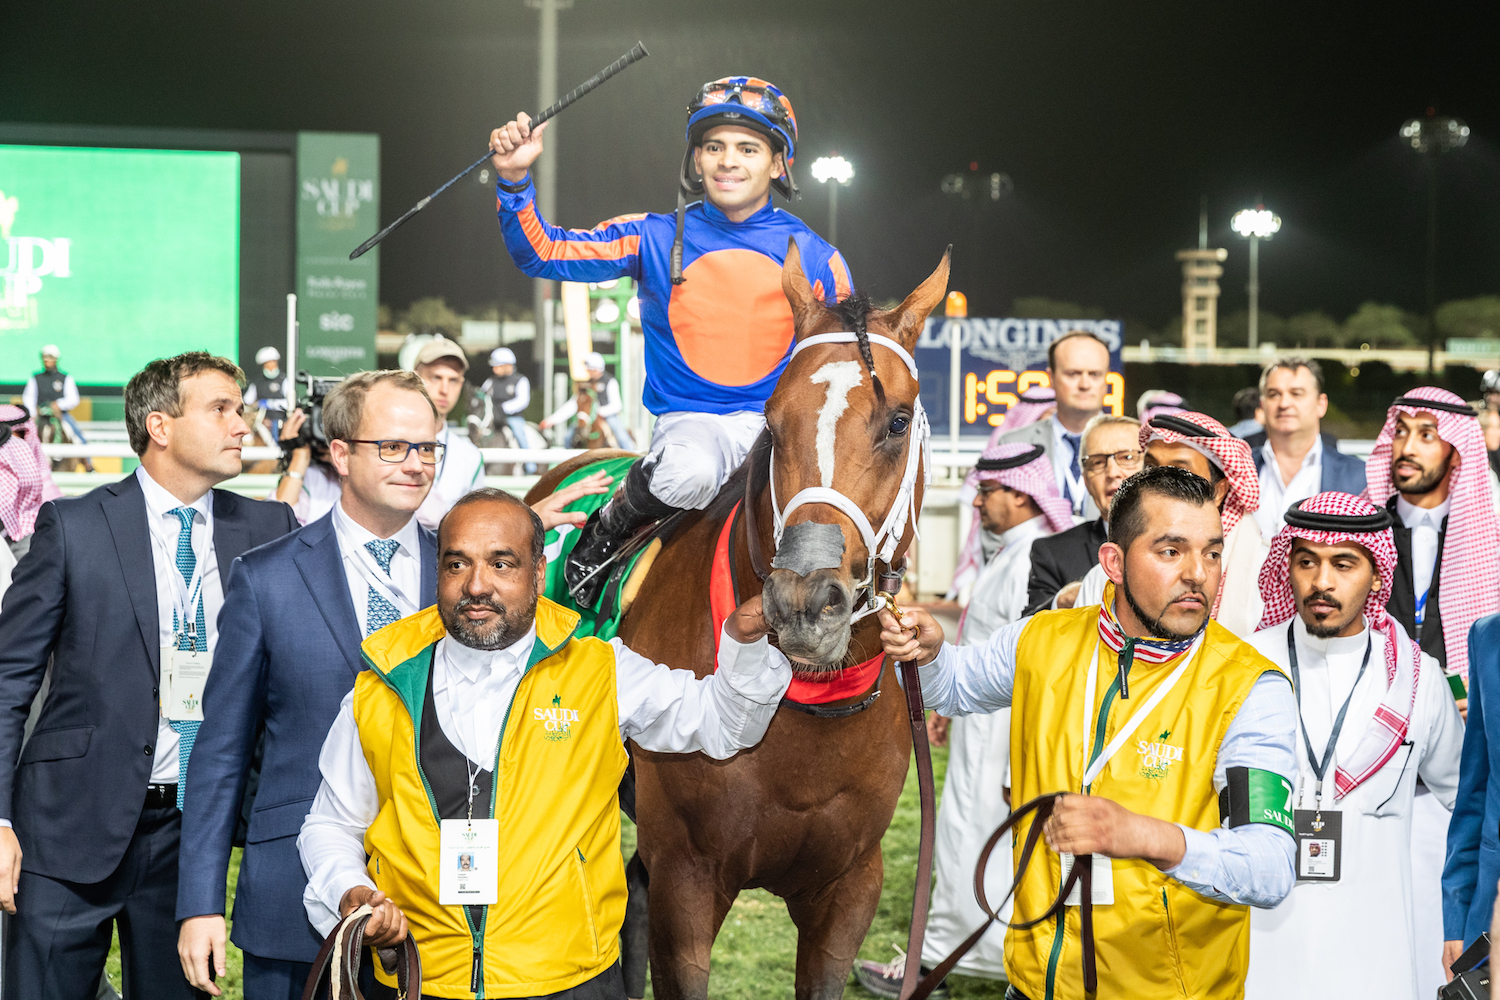 Heroes return: Maximum Security and Luis Saez acknowledge the cheers after winning the Sauid Cup. Photo: Jockey Club of Saudi Arabia